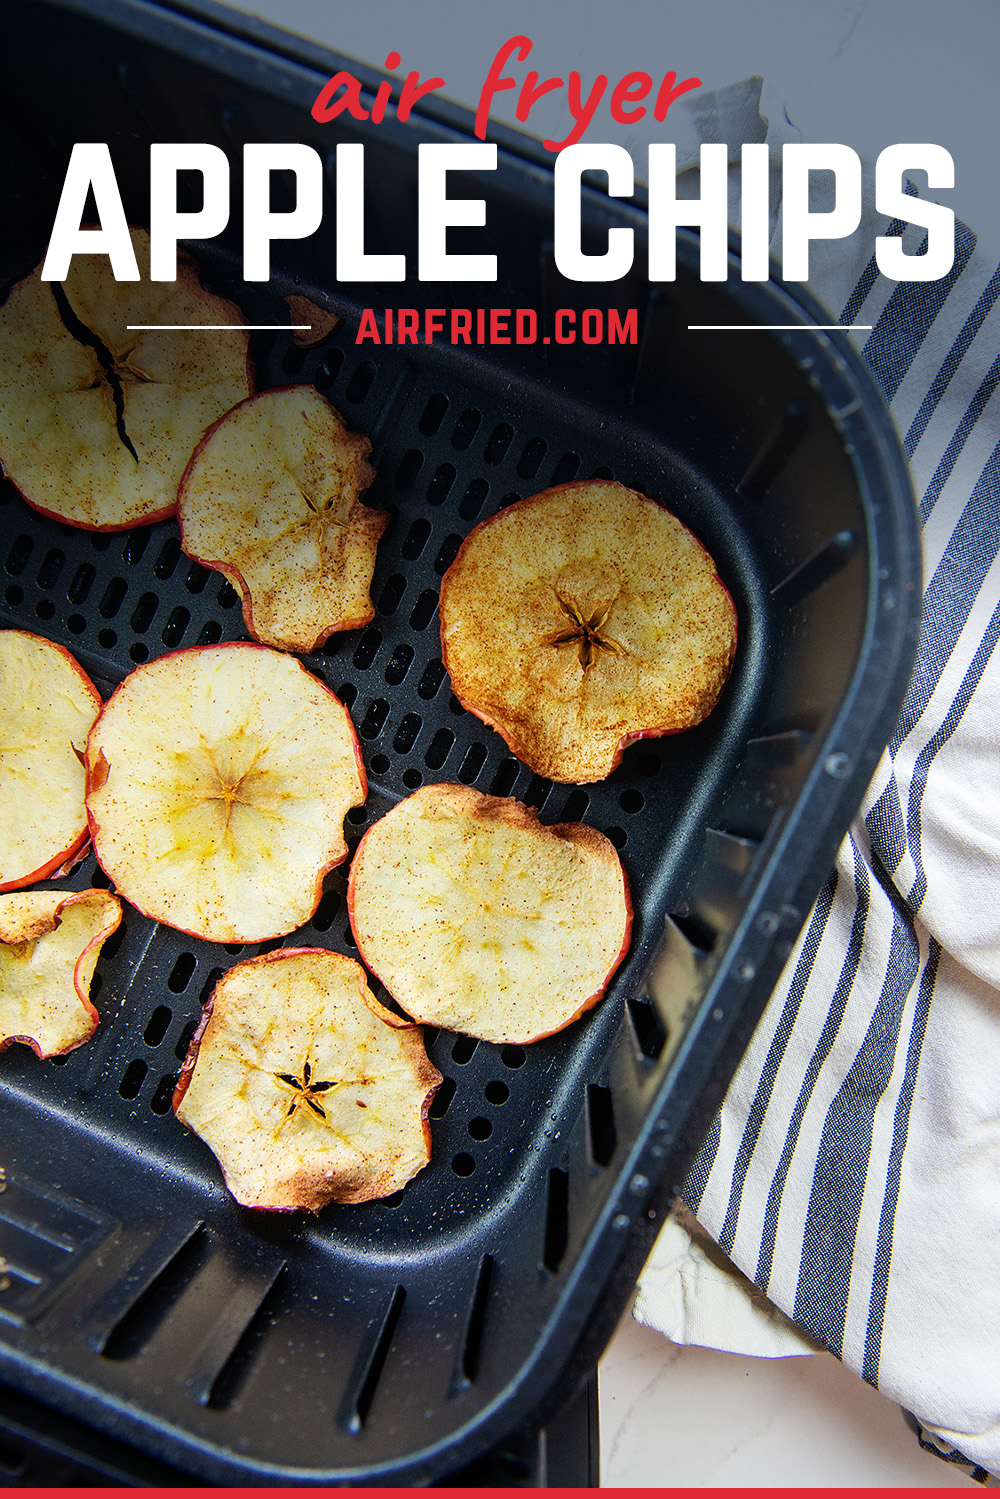 The best part of making your own apple chips is you can make them with as much cinnamon as you want!